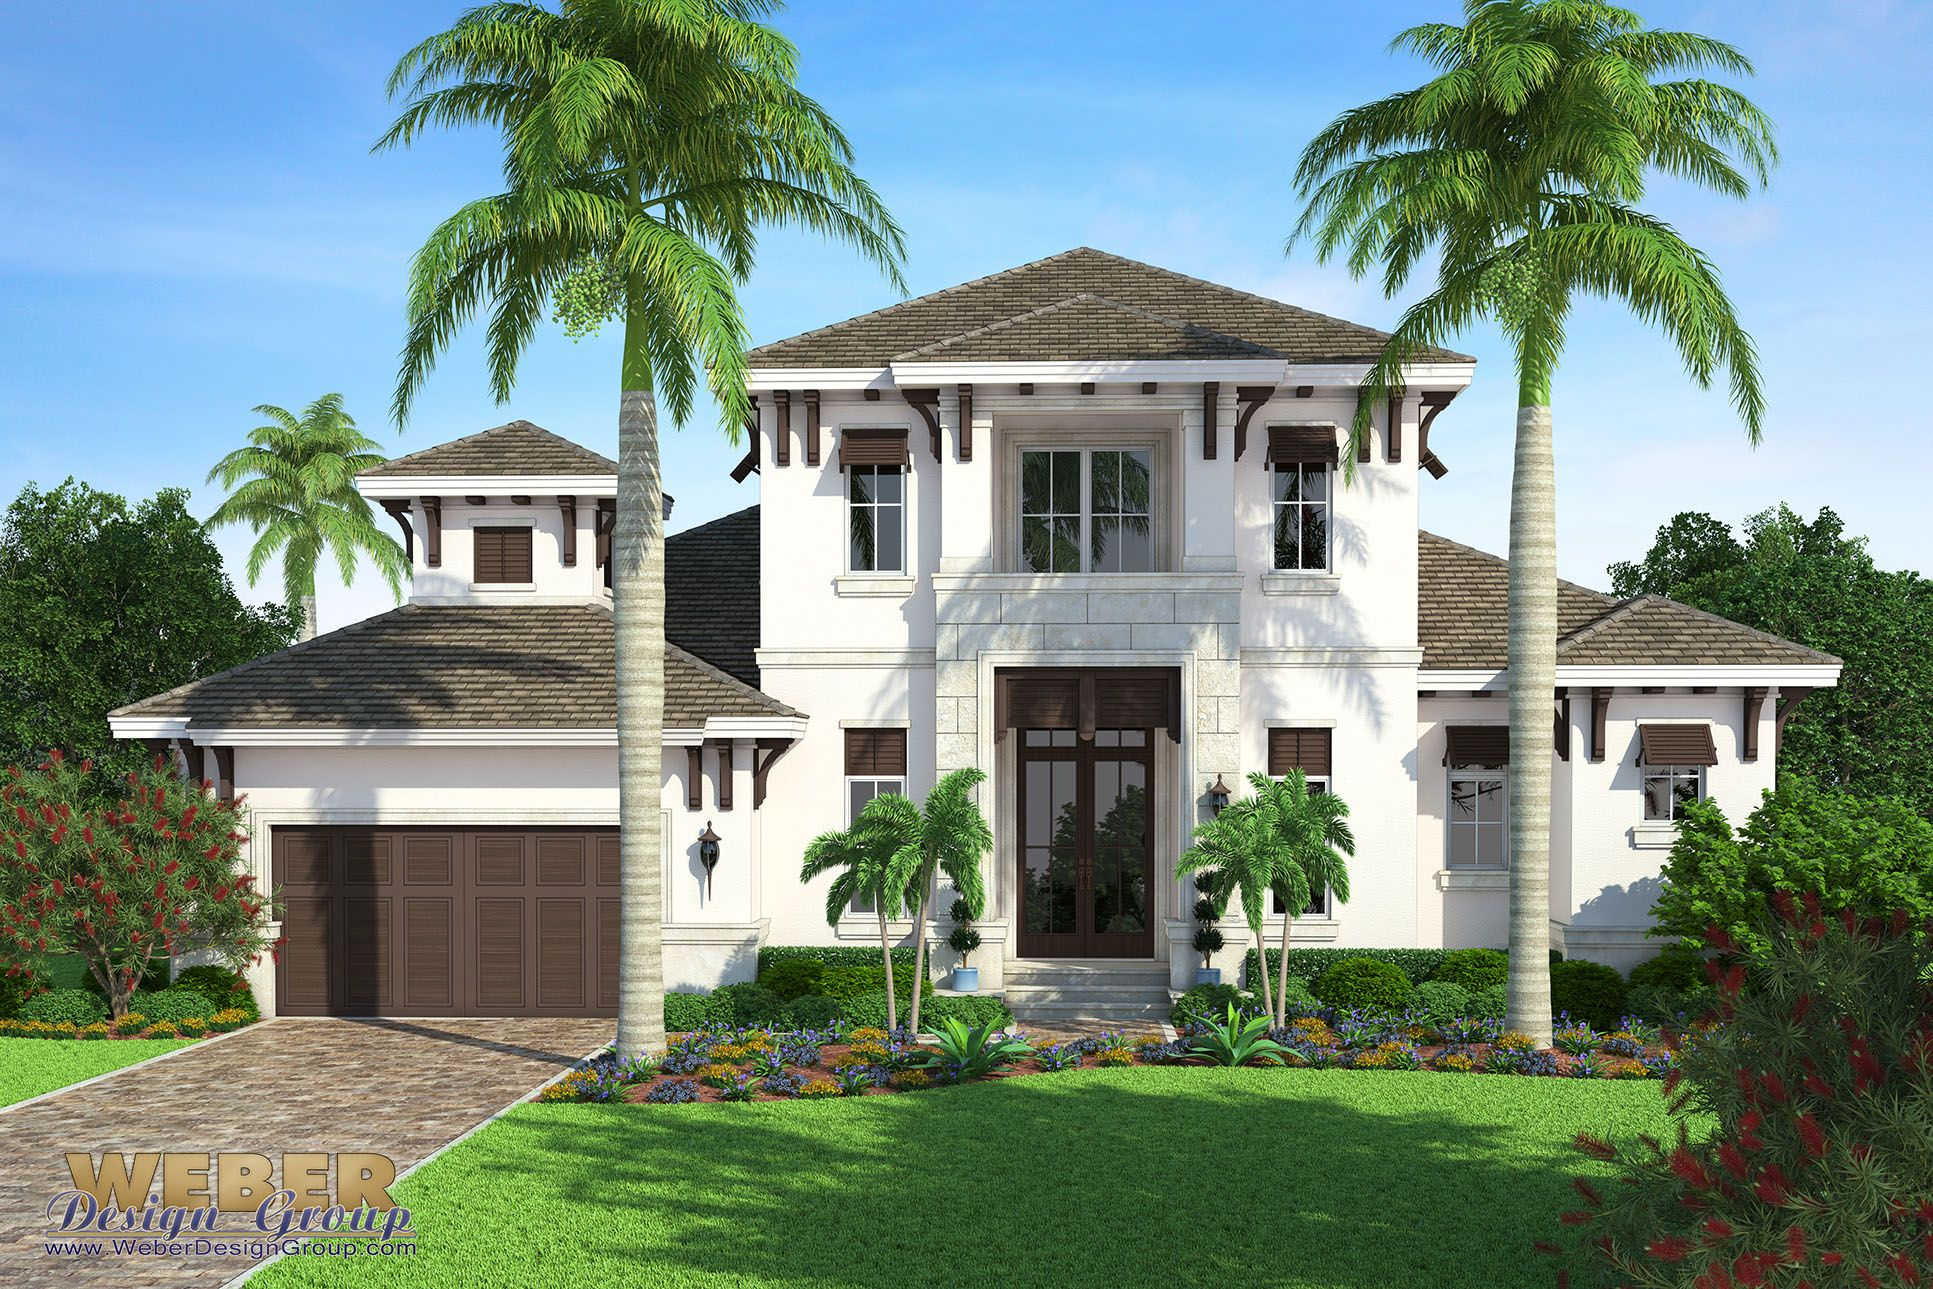 Caribbean House Plans Caribbean Home Plans Weber Design Group Classic  Caribbean Homes Designs, Gallery Caribbean House Plans Caribbean Home Plans  Weber ...